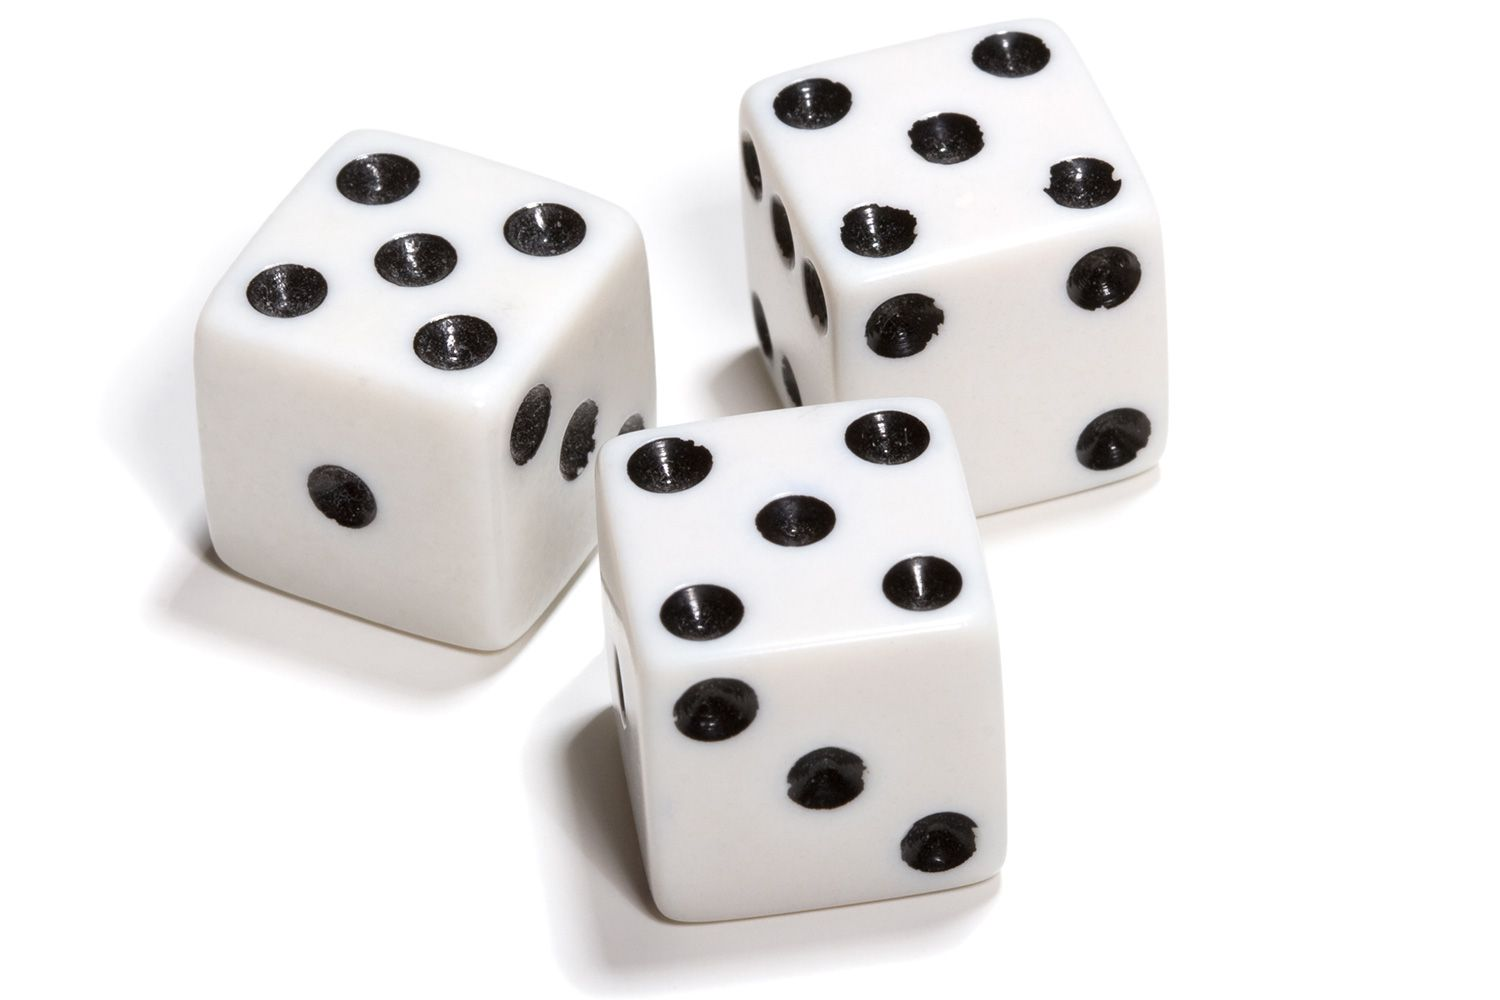 Probabilities For Rolling Three Dice